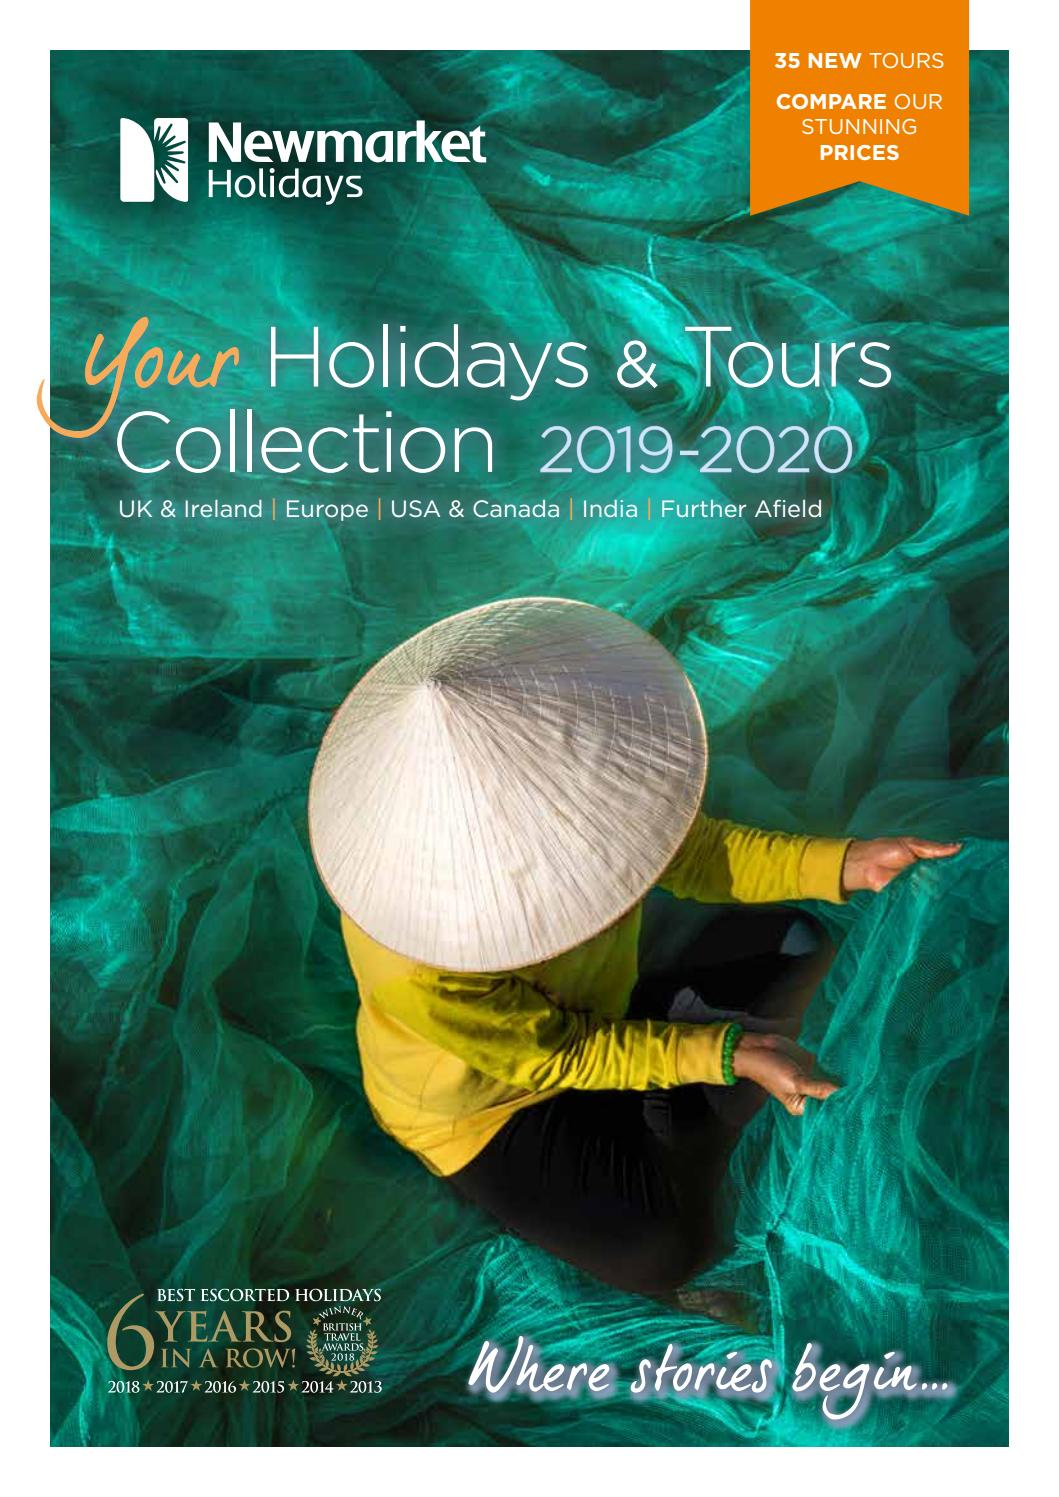 f79a90e5cfc Your Holidays   Tours Collection 2019-2020 by Newmarket Holidays - issuu